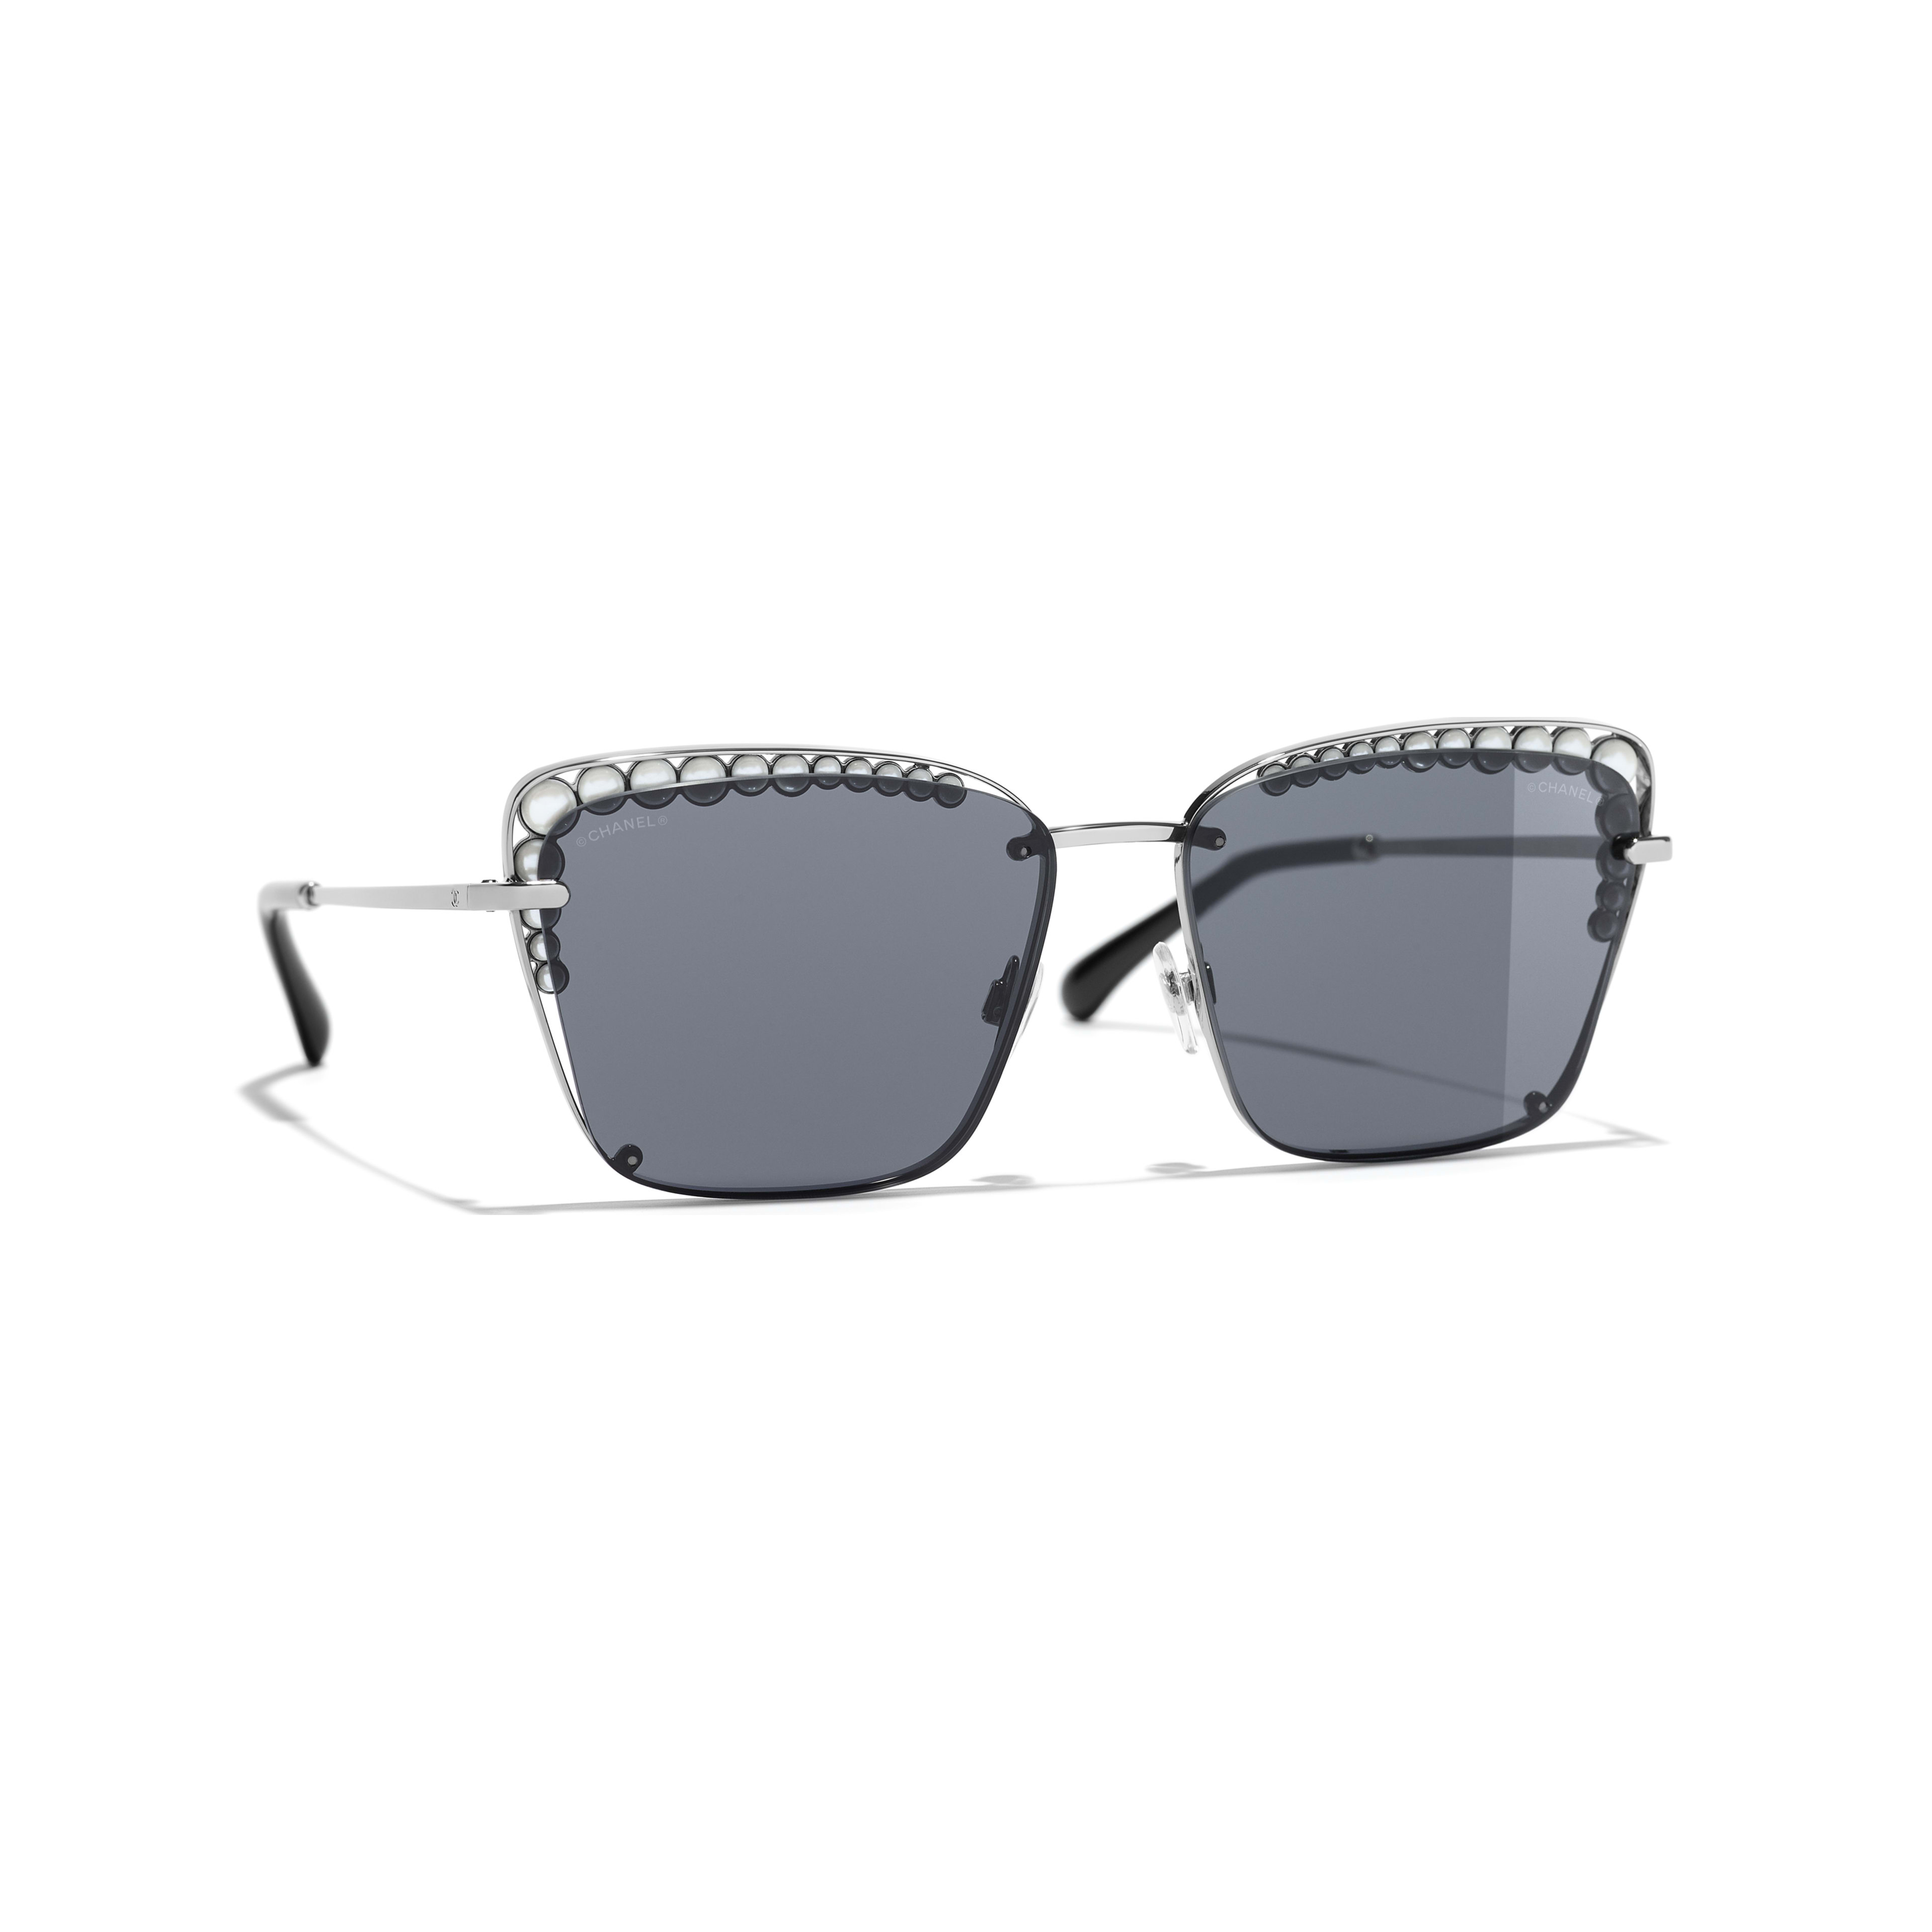 Square Sunglasses - Dark Silver - Metal & Imitation Pearls - Default view - see full sized version